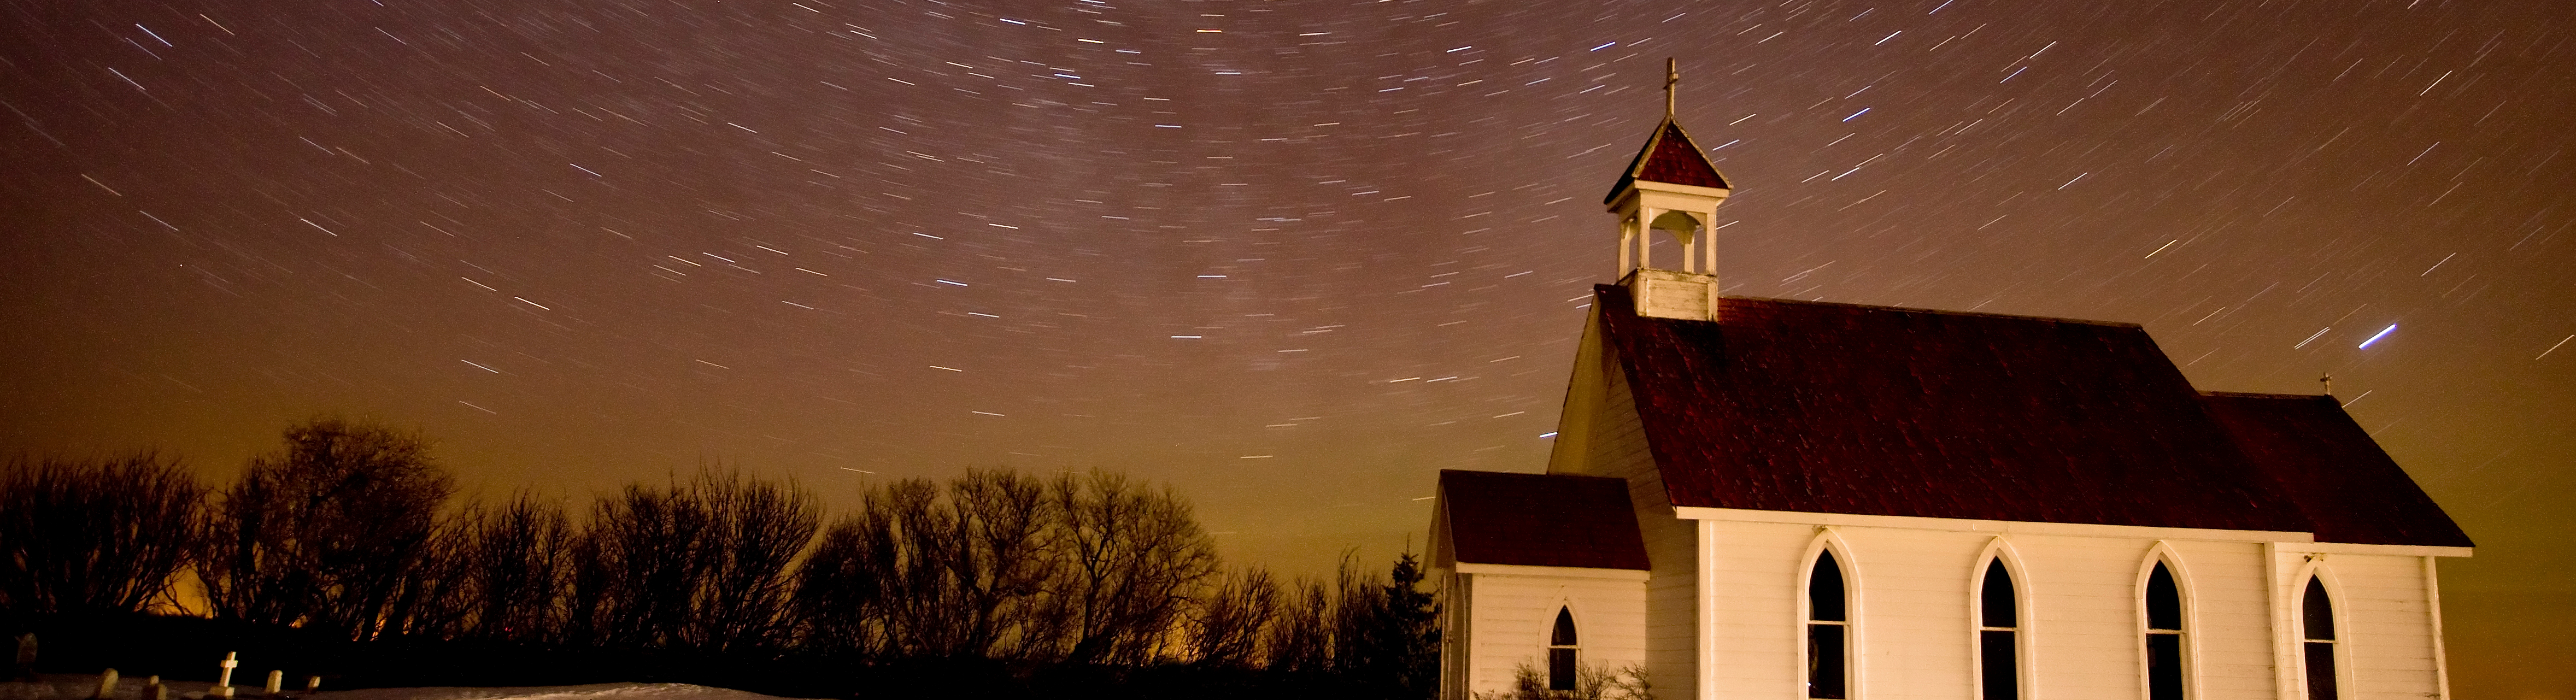 White country church with trees along the bottom and night sky with star trails above.